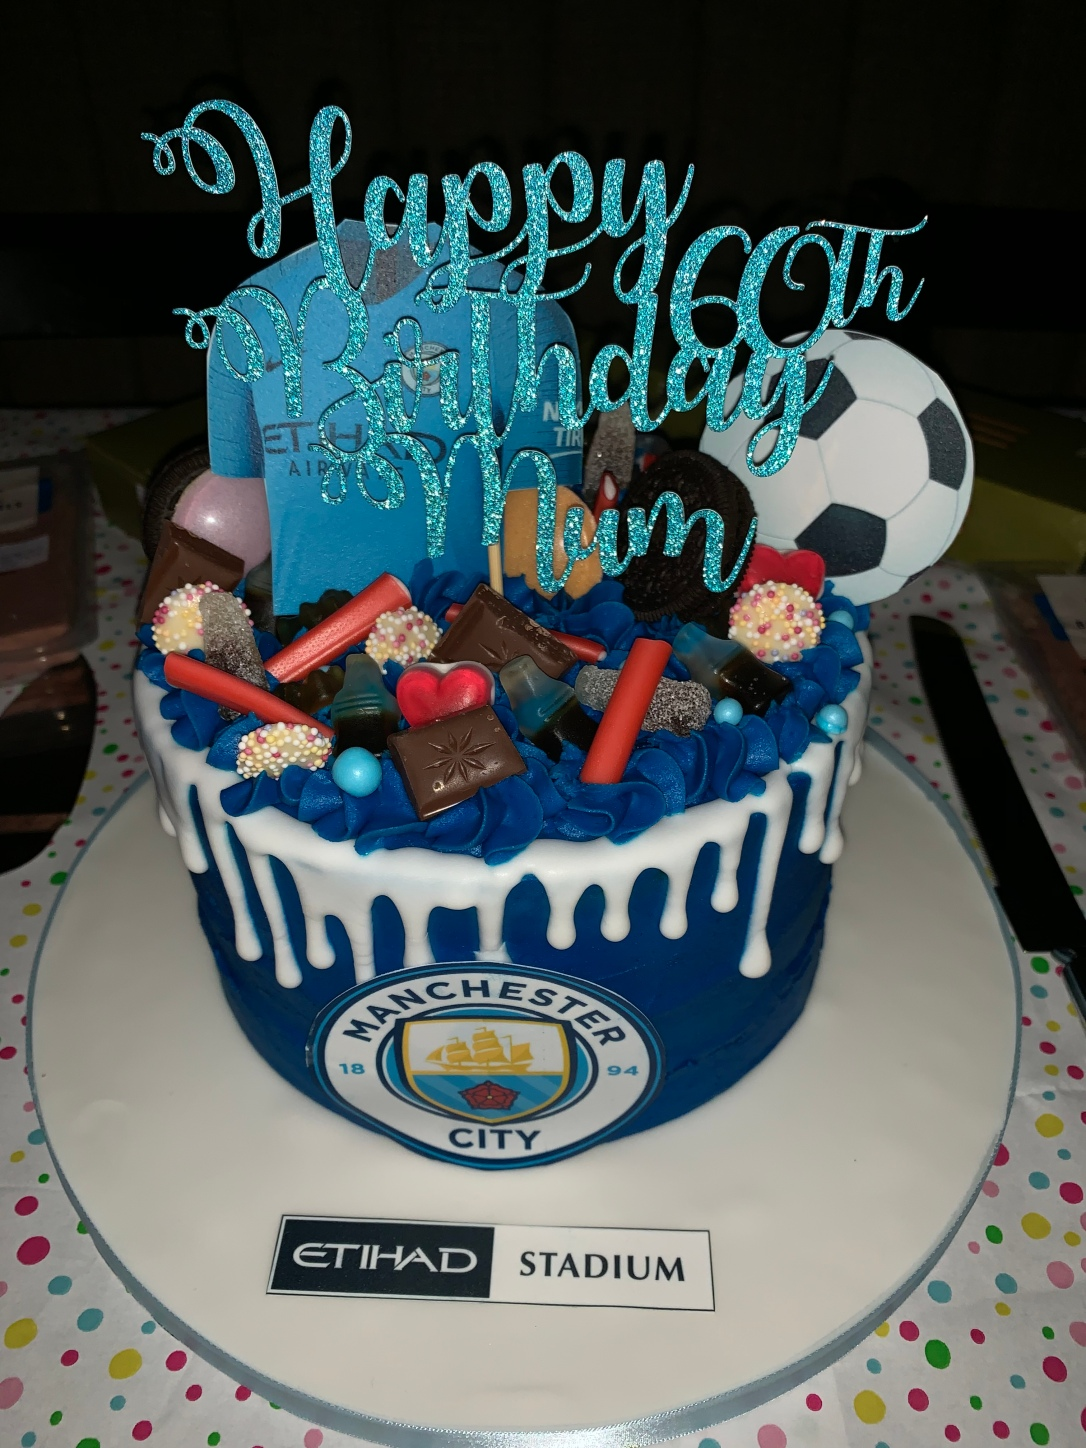 Manchester City football 60th birthday cake